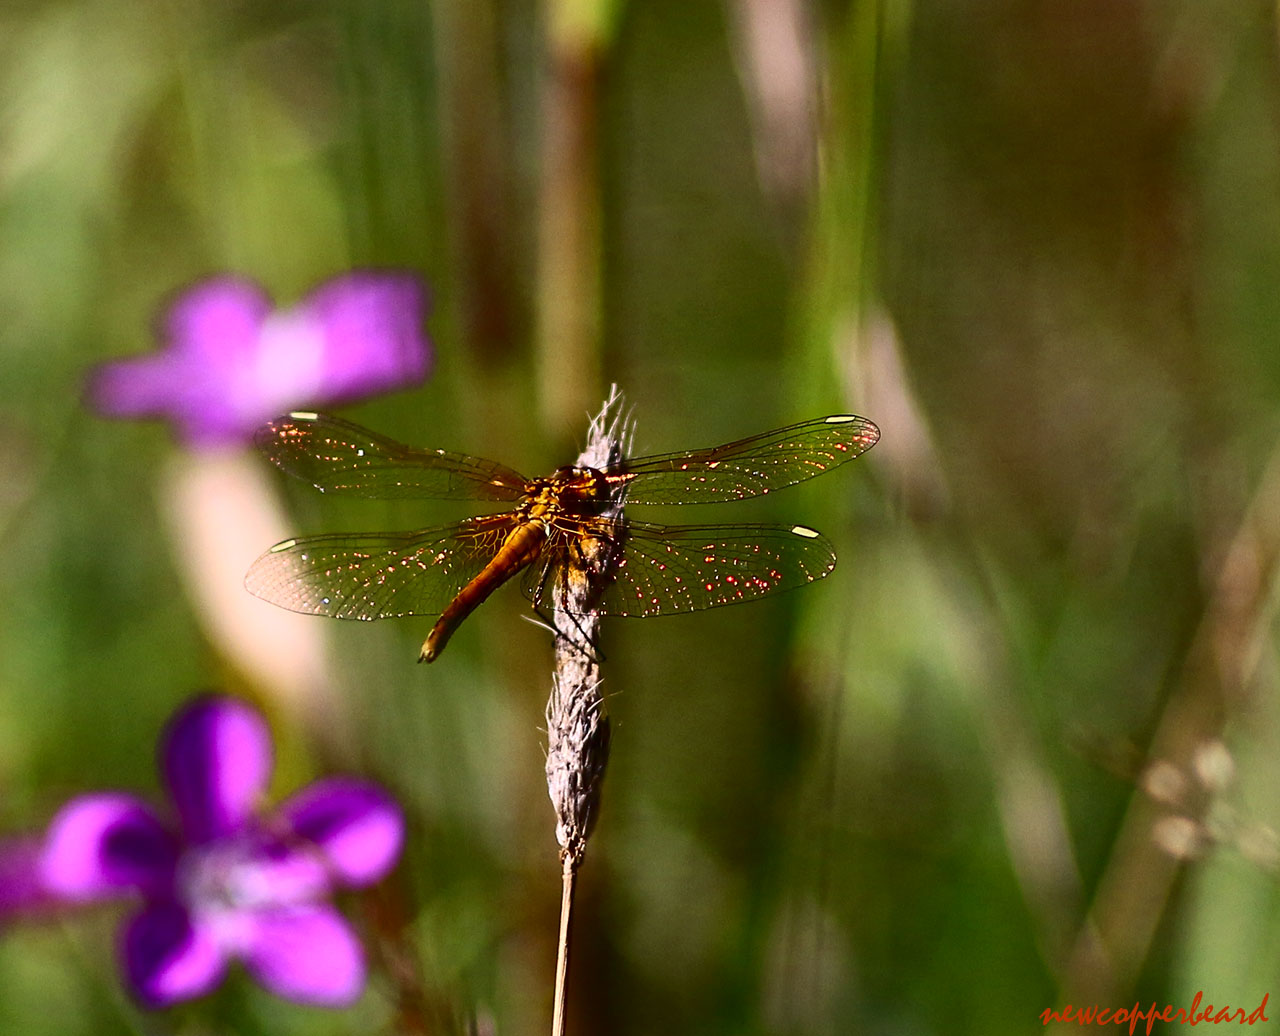 dragonfly-red stars1280